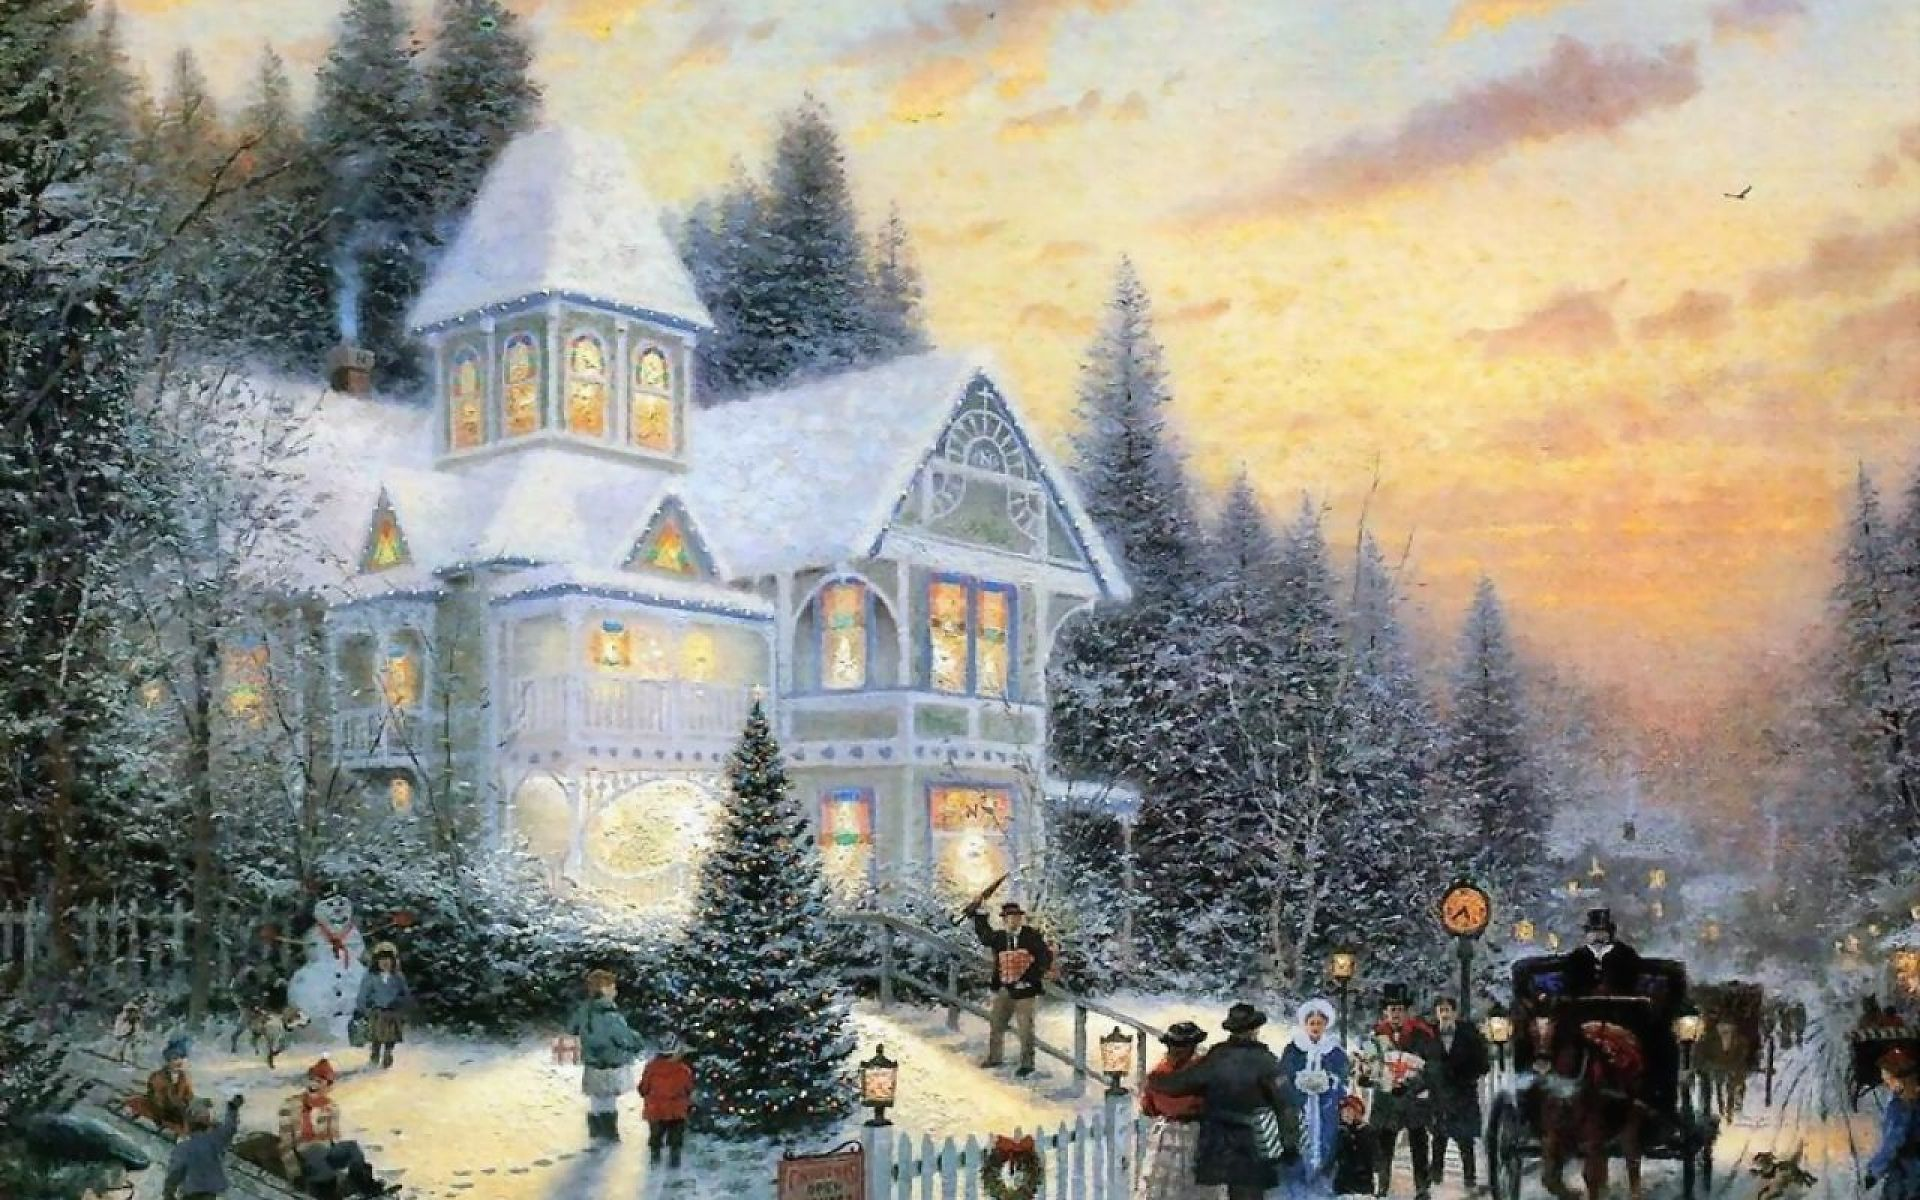 Thomas Kinkade Christmas Wallpaper Julebilleder Billeder Vinter